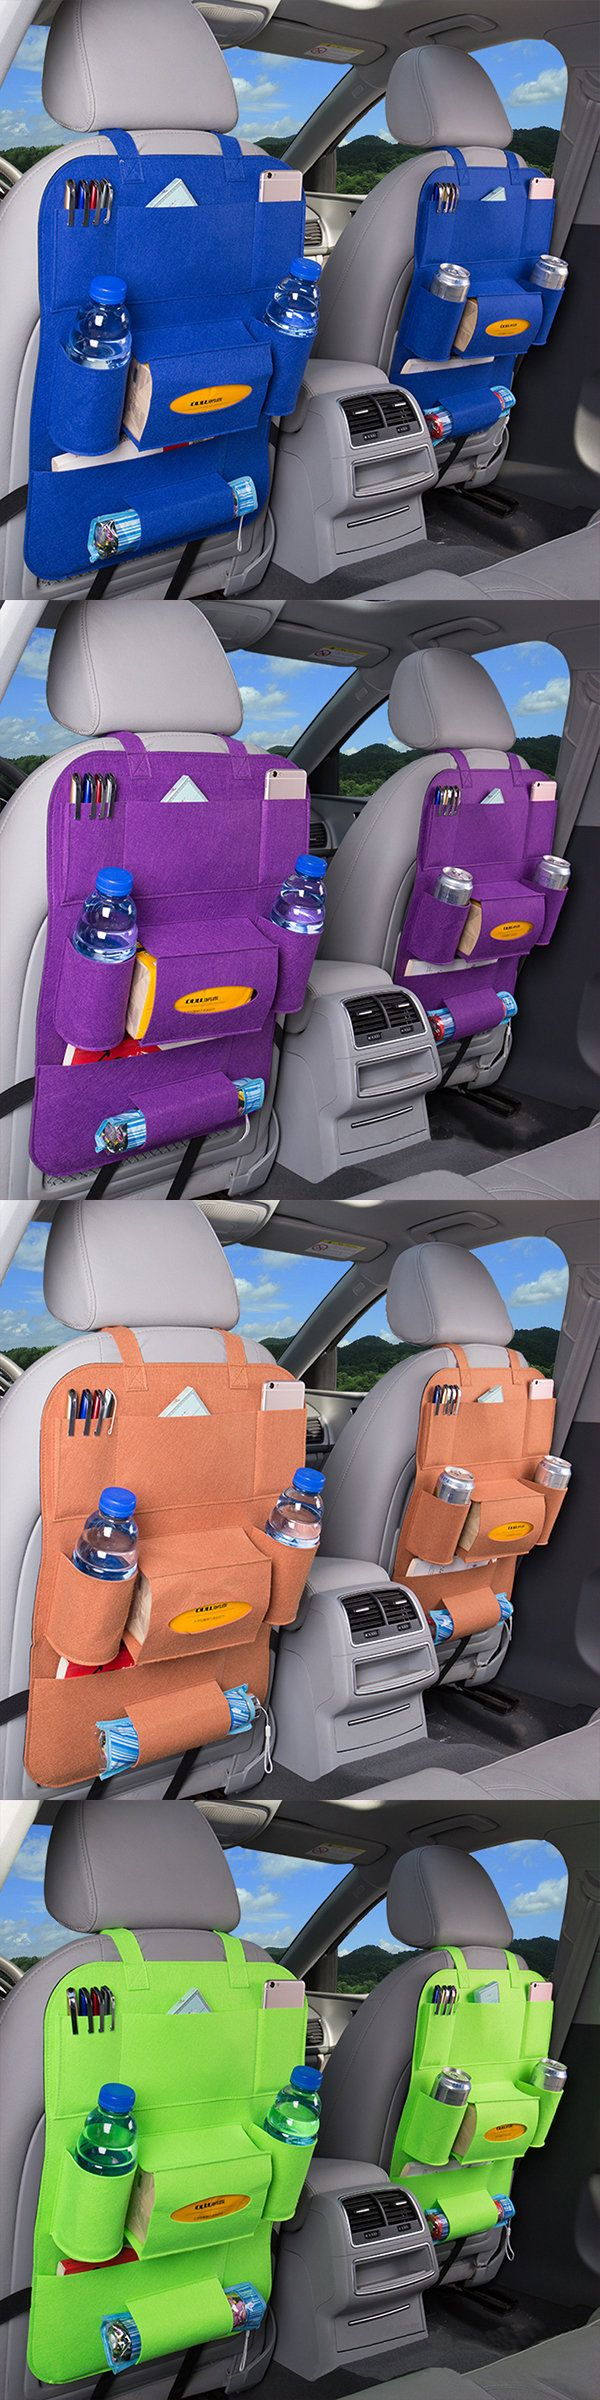 US$7.76 Multifuctional Car Storage Bag_ Carriage Bag_ Nonwovens Hanging Bag